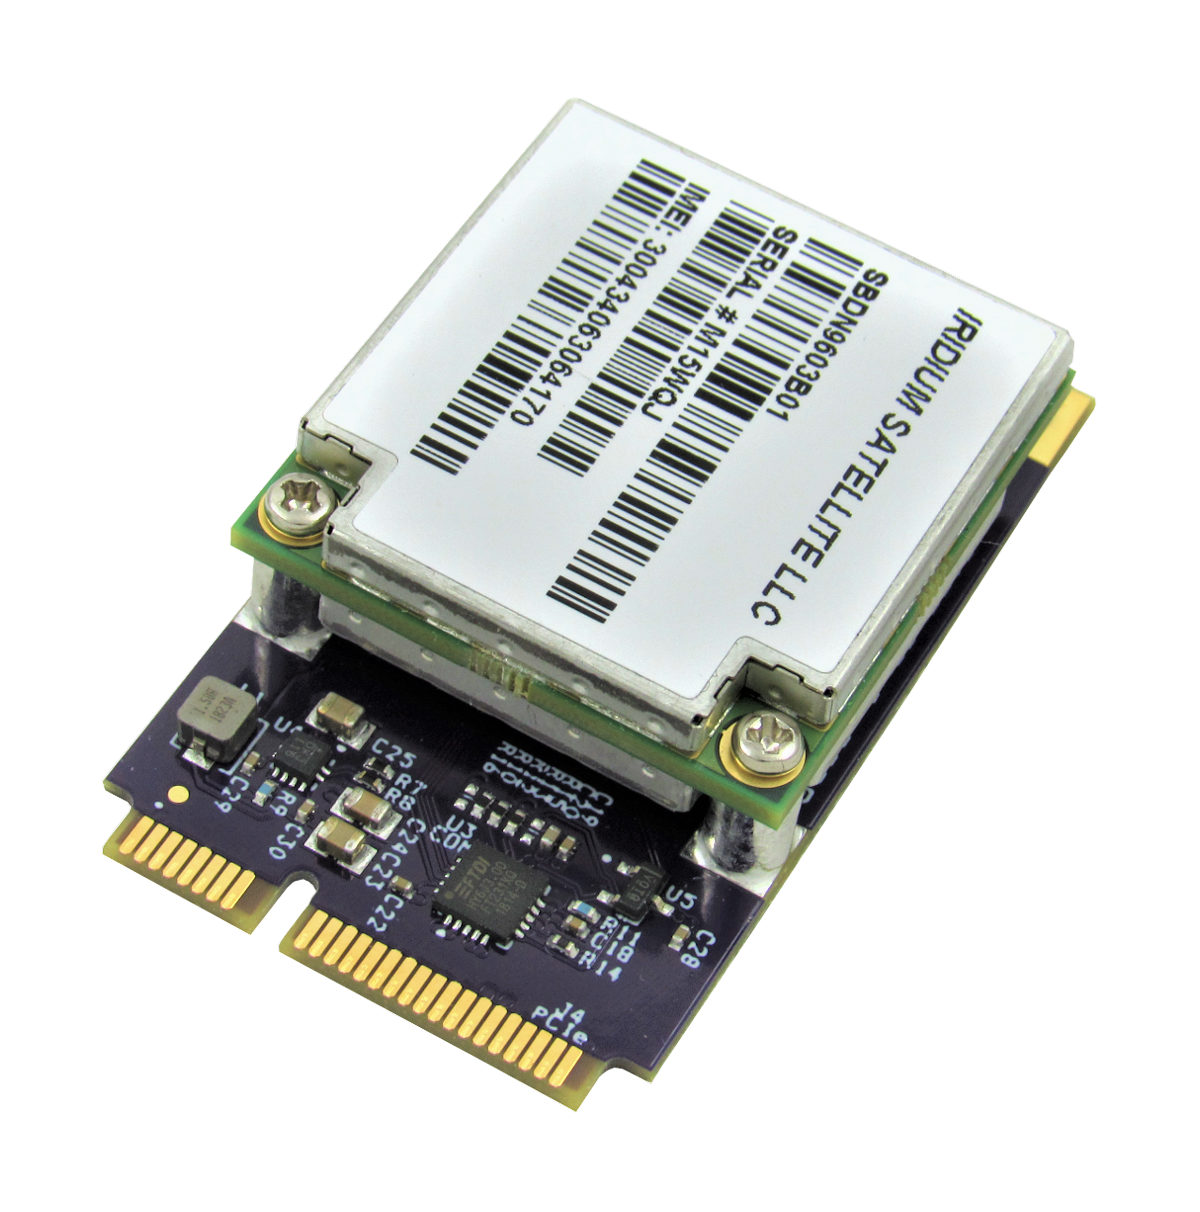 GW16130 Mini-PCIe Satellite Modem